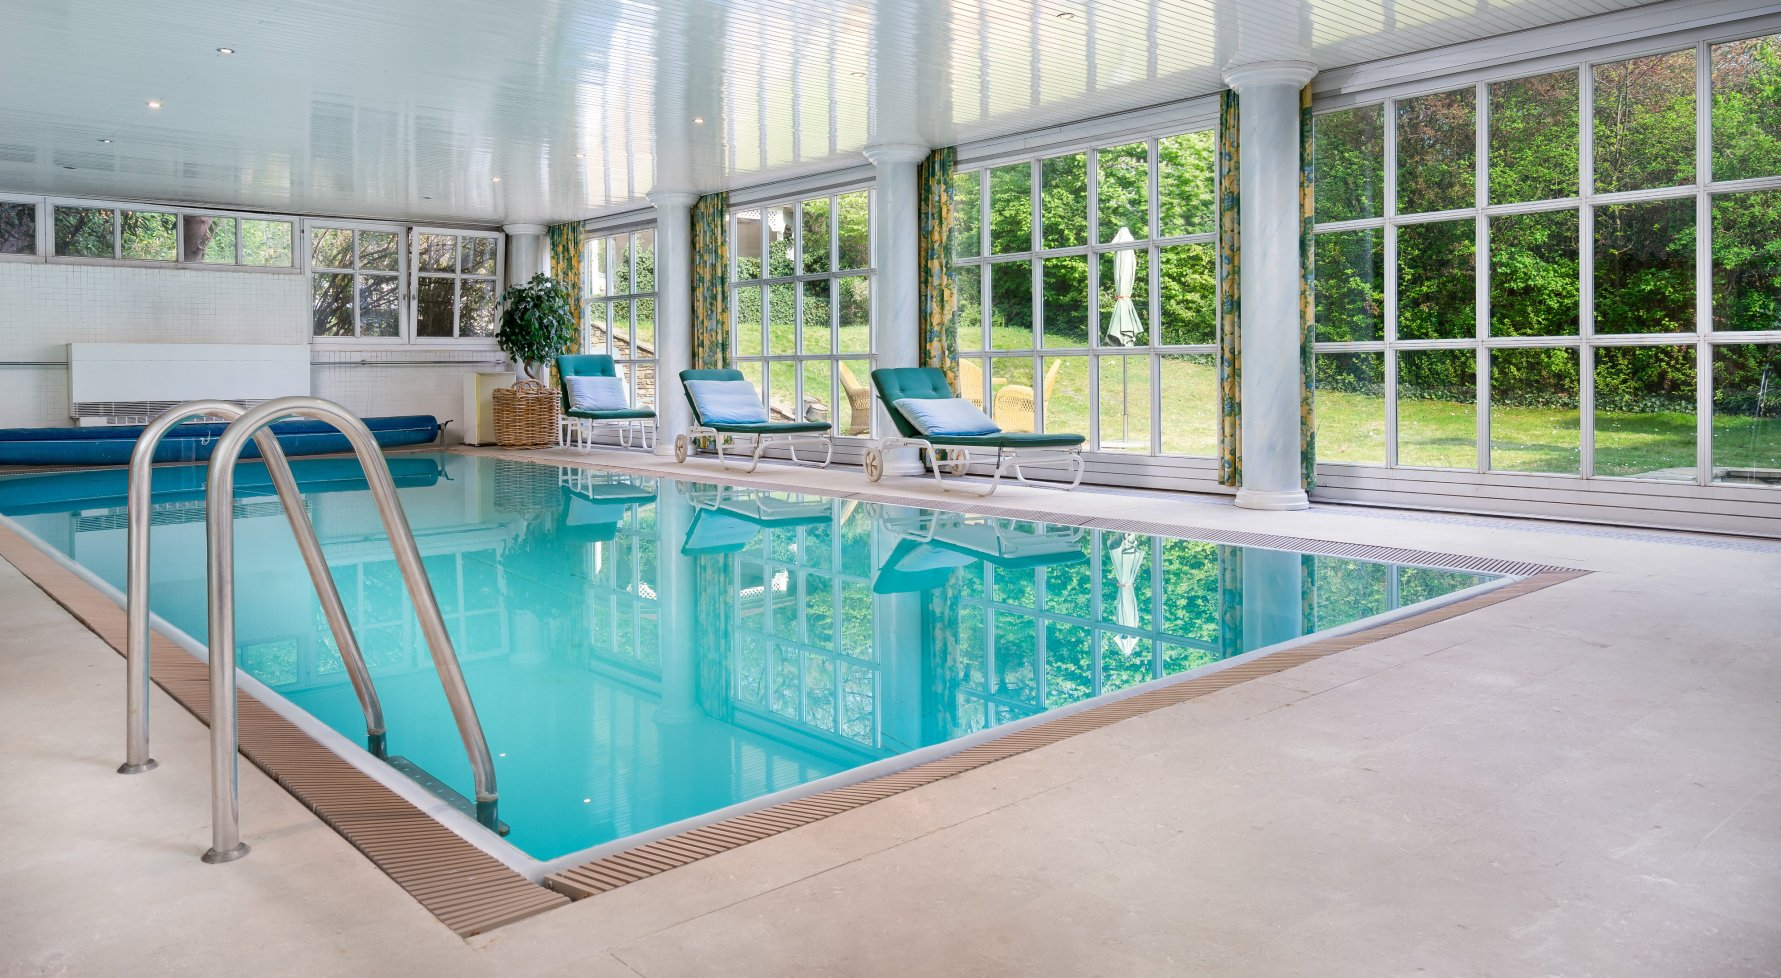 Property in 1130 Wien, 13. Bezirk: Villa with swimming pool in Hietzing - picture 1